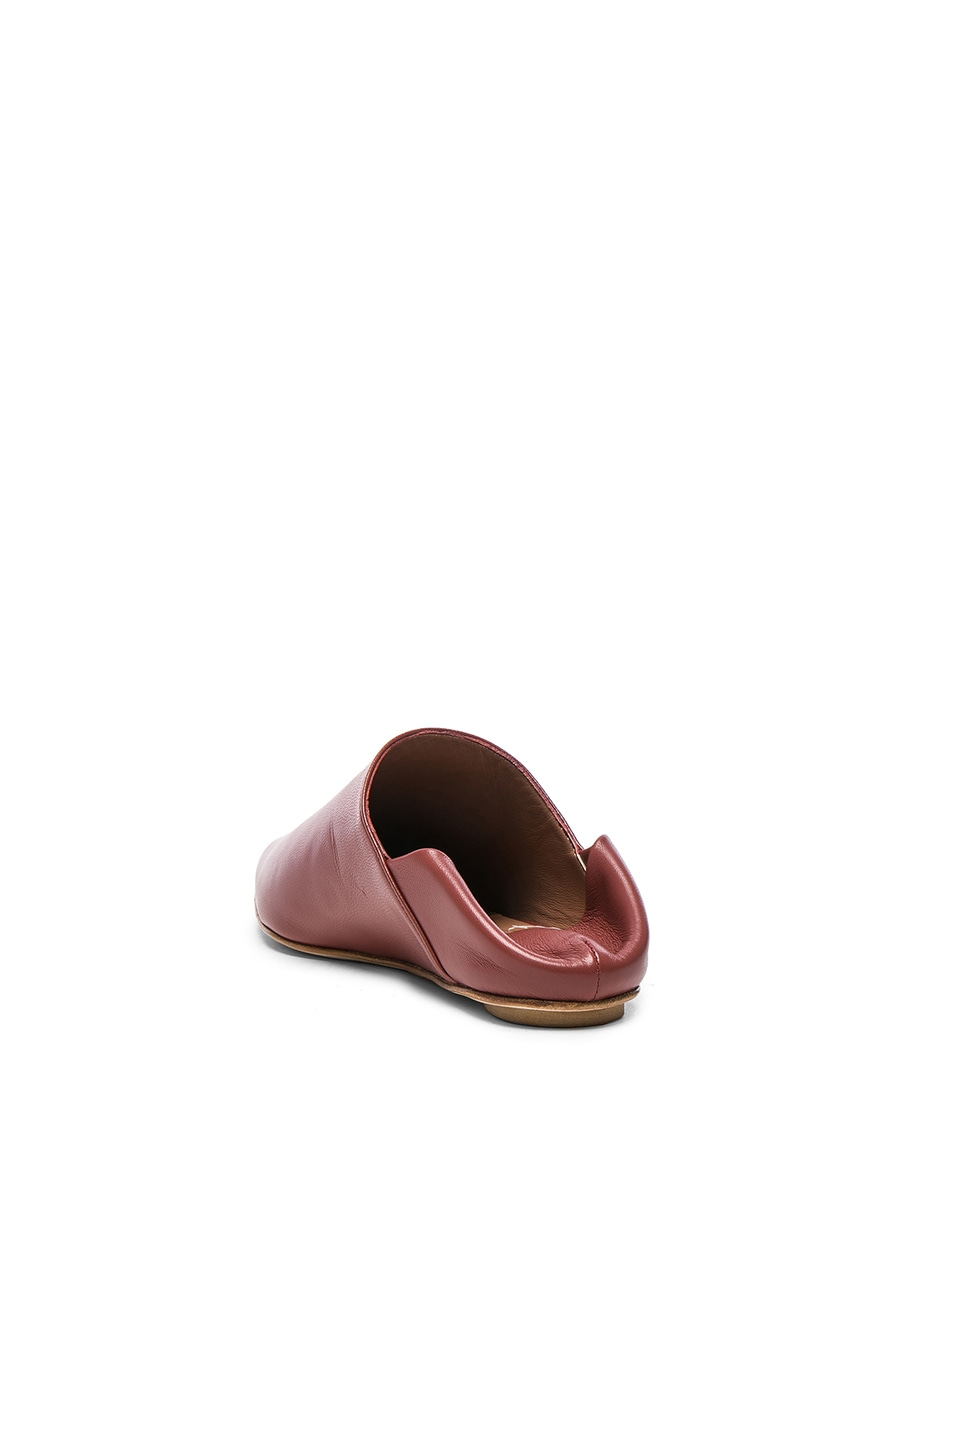 Image 3 of Marni Leather Sabot Mules in Saddle Brown